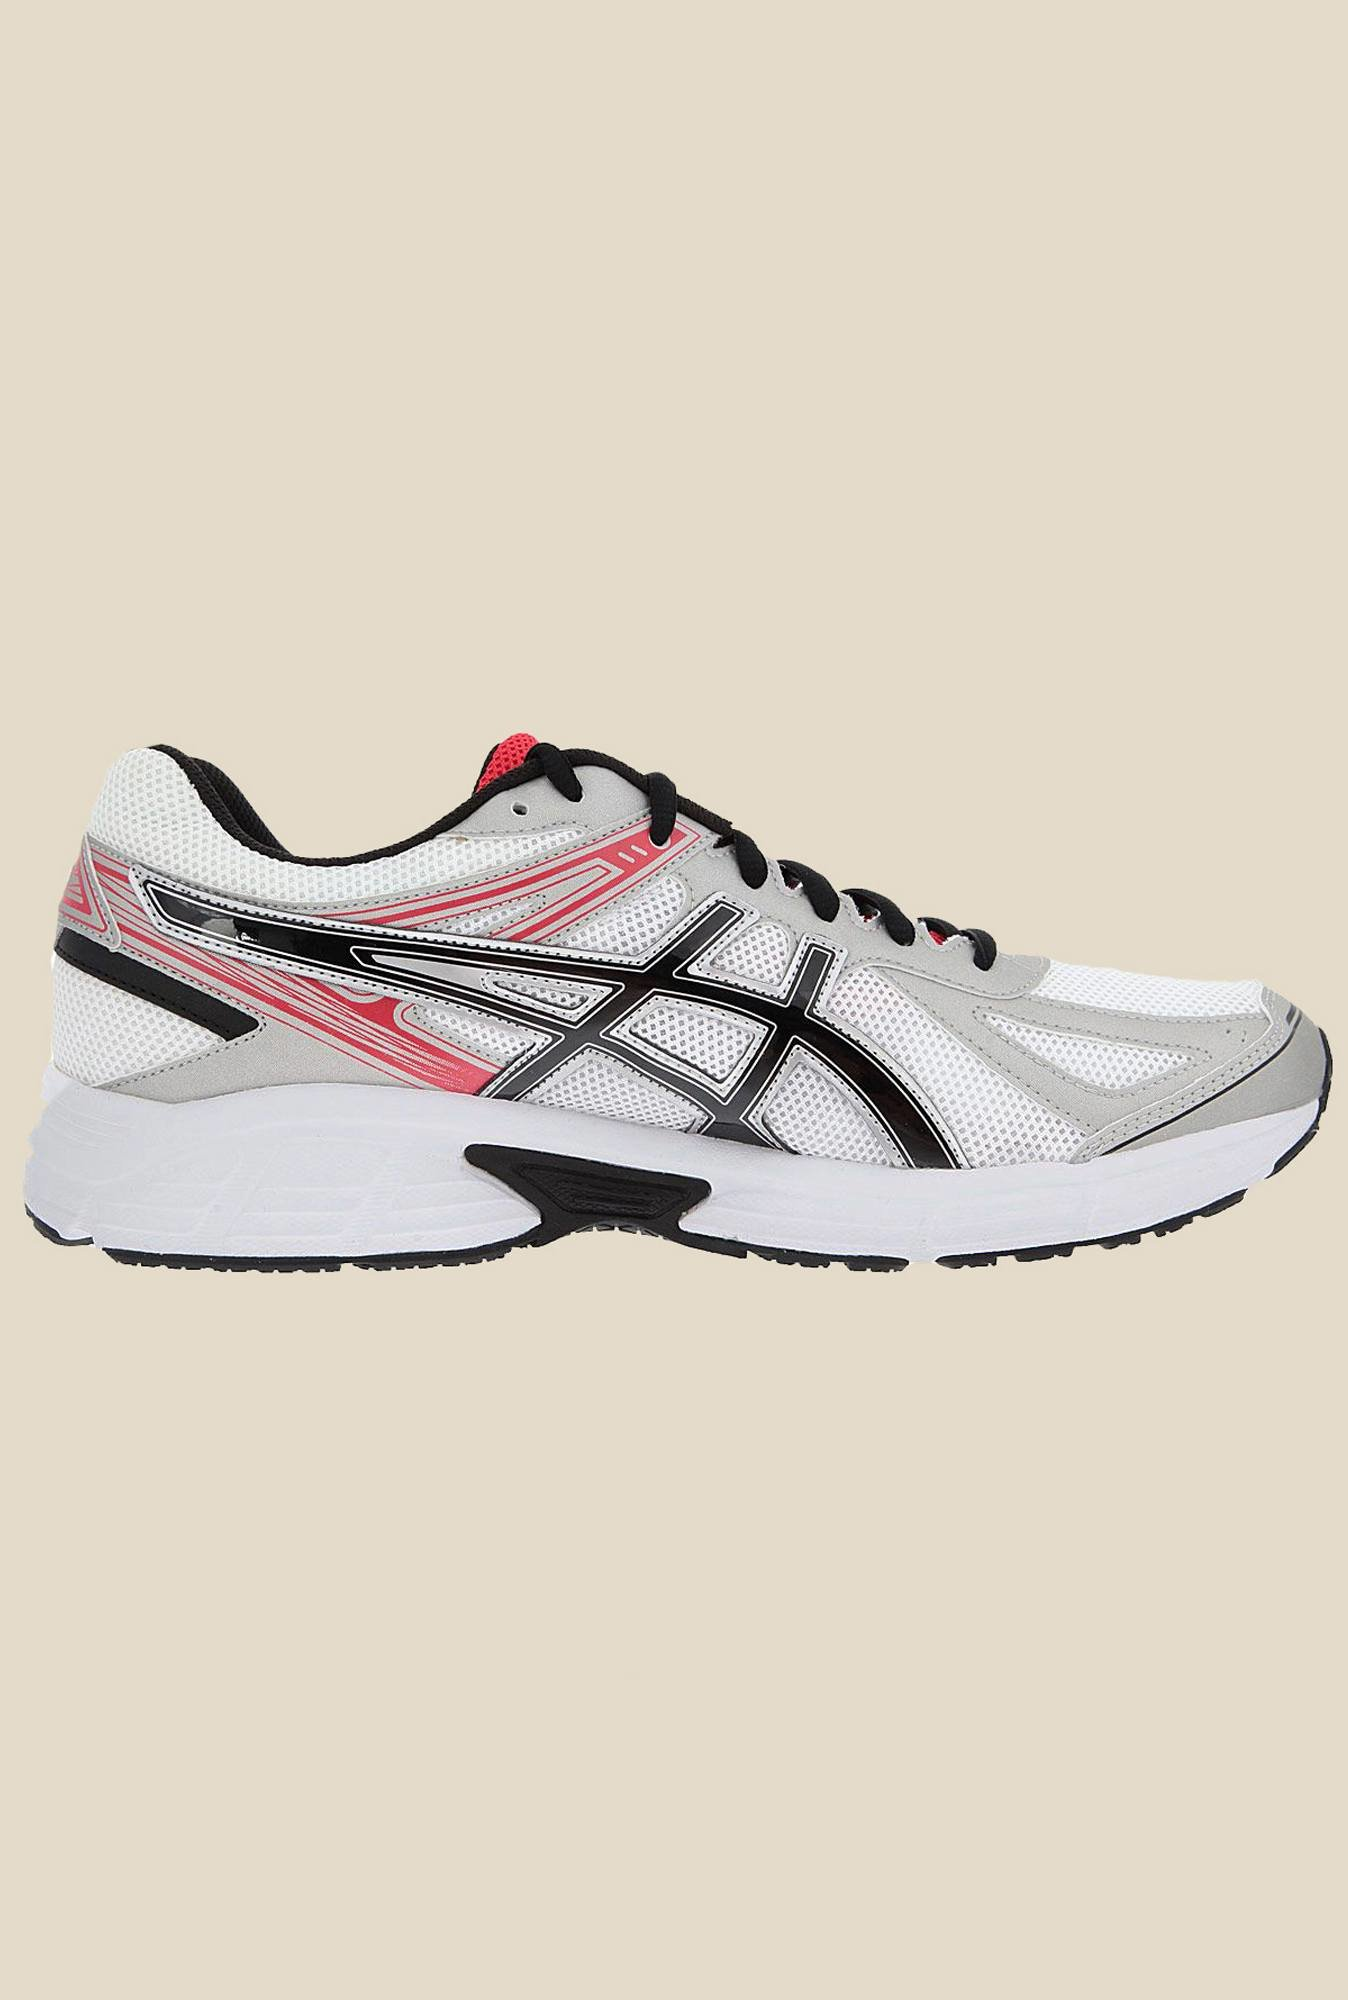 Asics White & Red Running Shoes